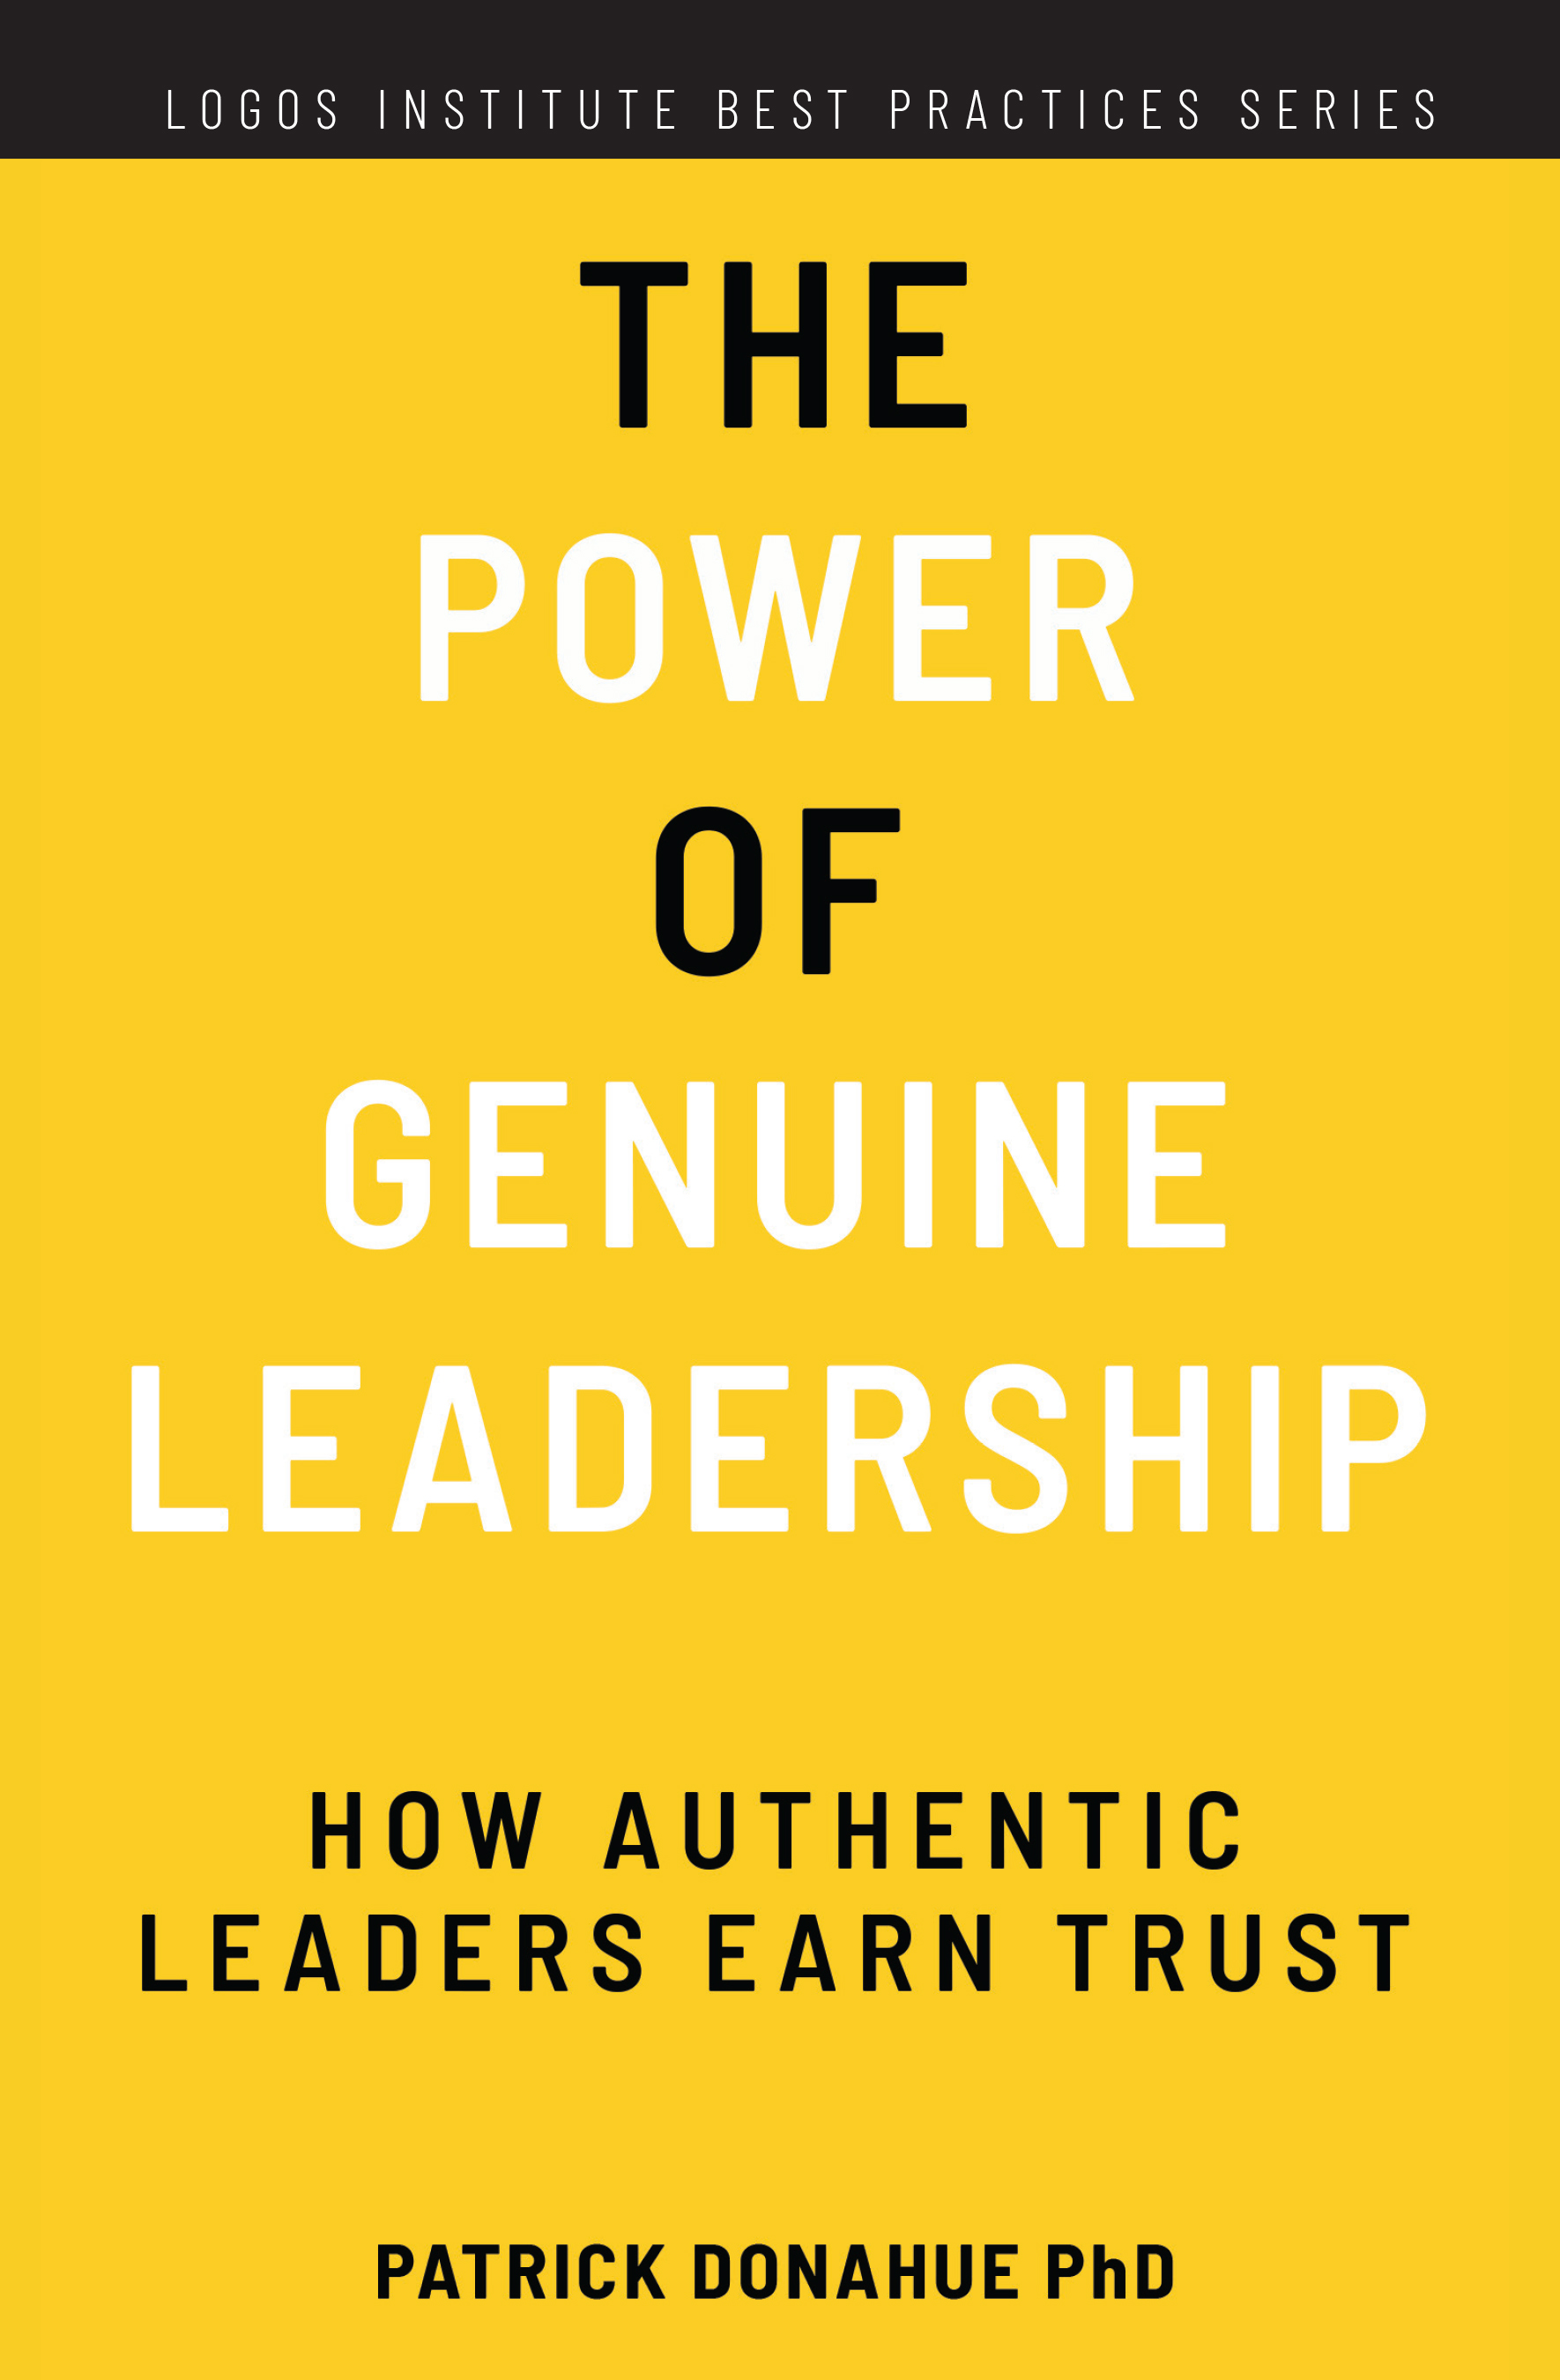 Logos Institute Press Celebrates the Launch of its Third Title 'The Power of Genuine Leadership'